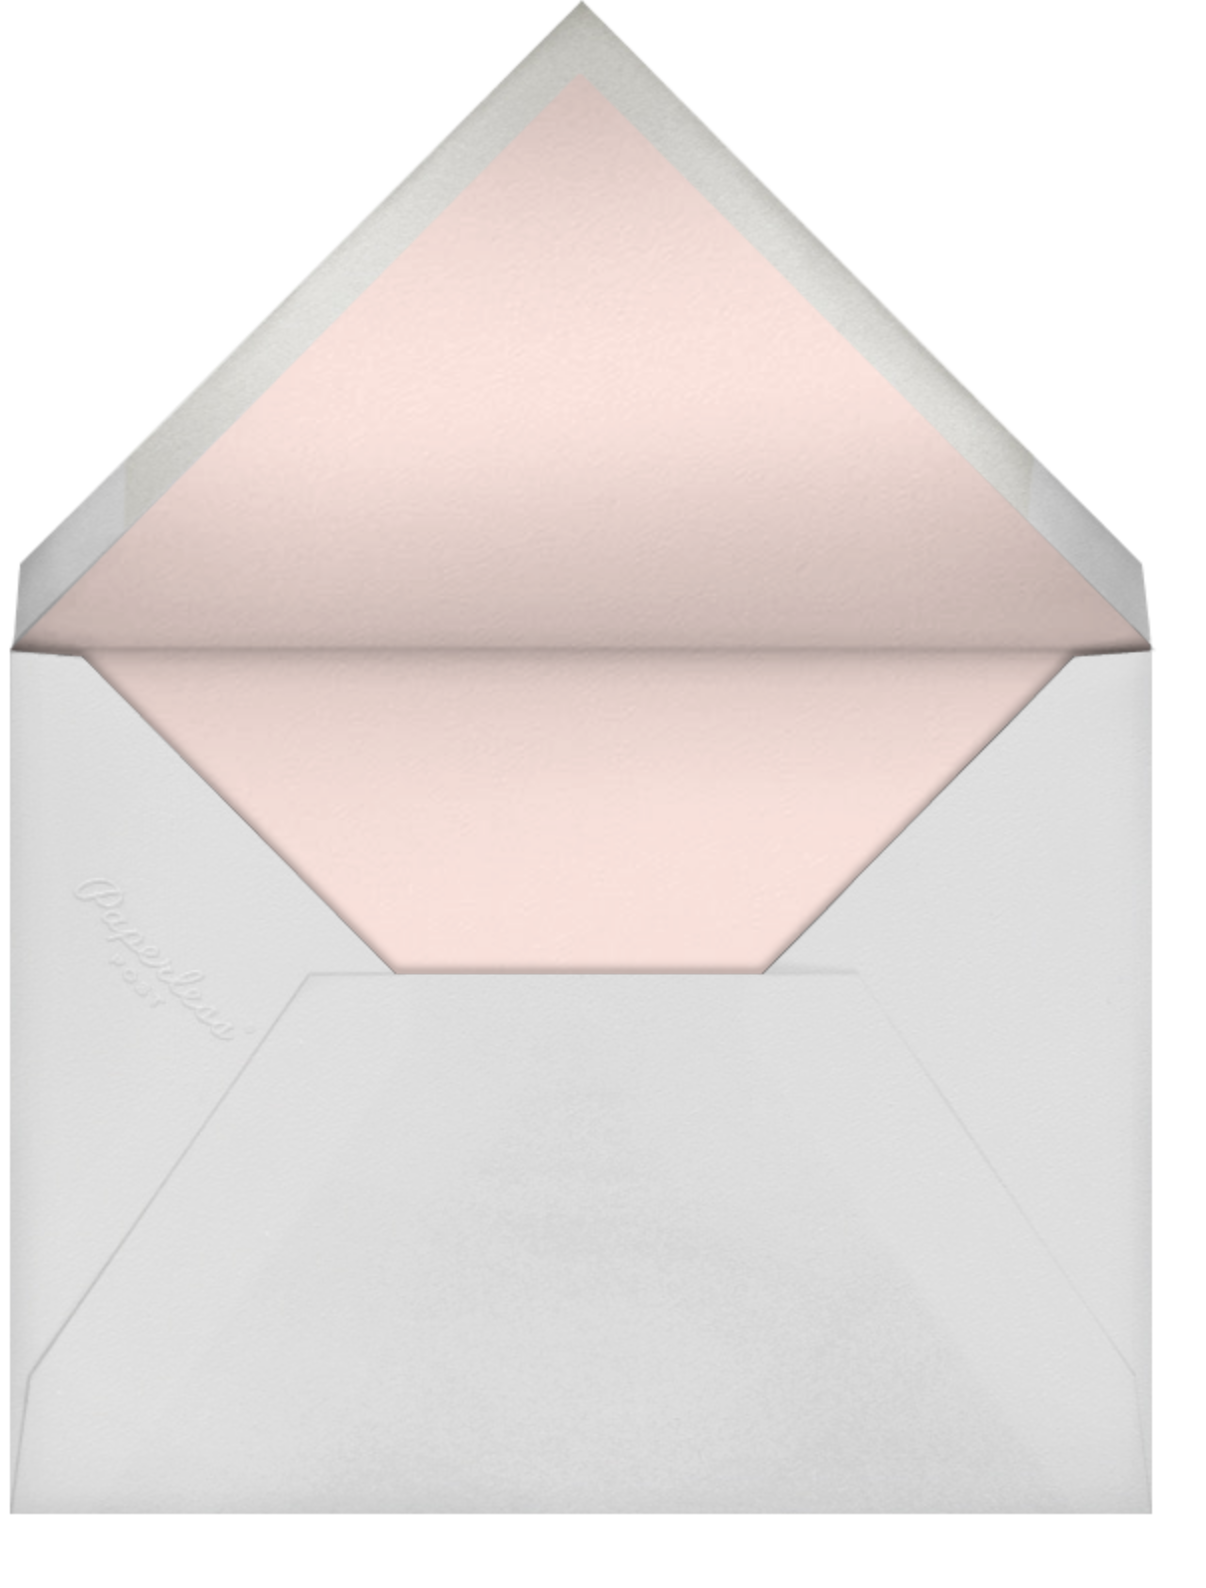 Blossoms on Tulle I - Pink - Oscar de la Renta - All - envelope back